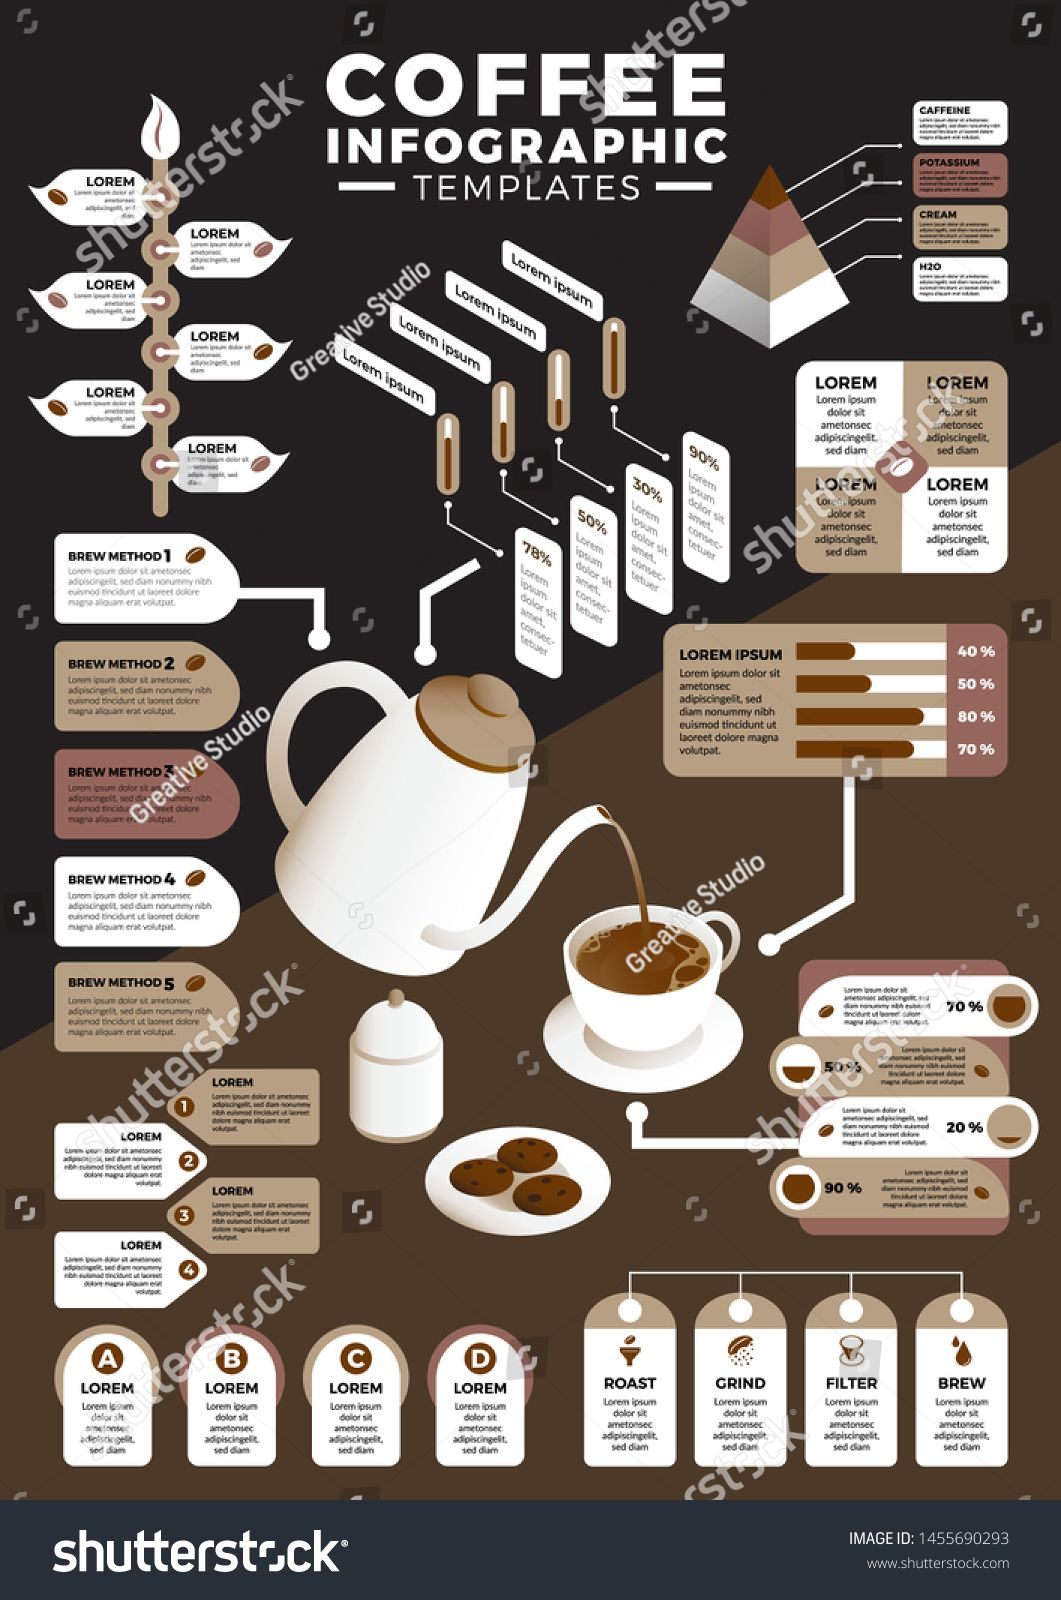 Pin On Cafe Infographs